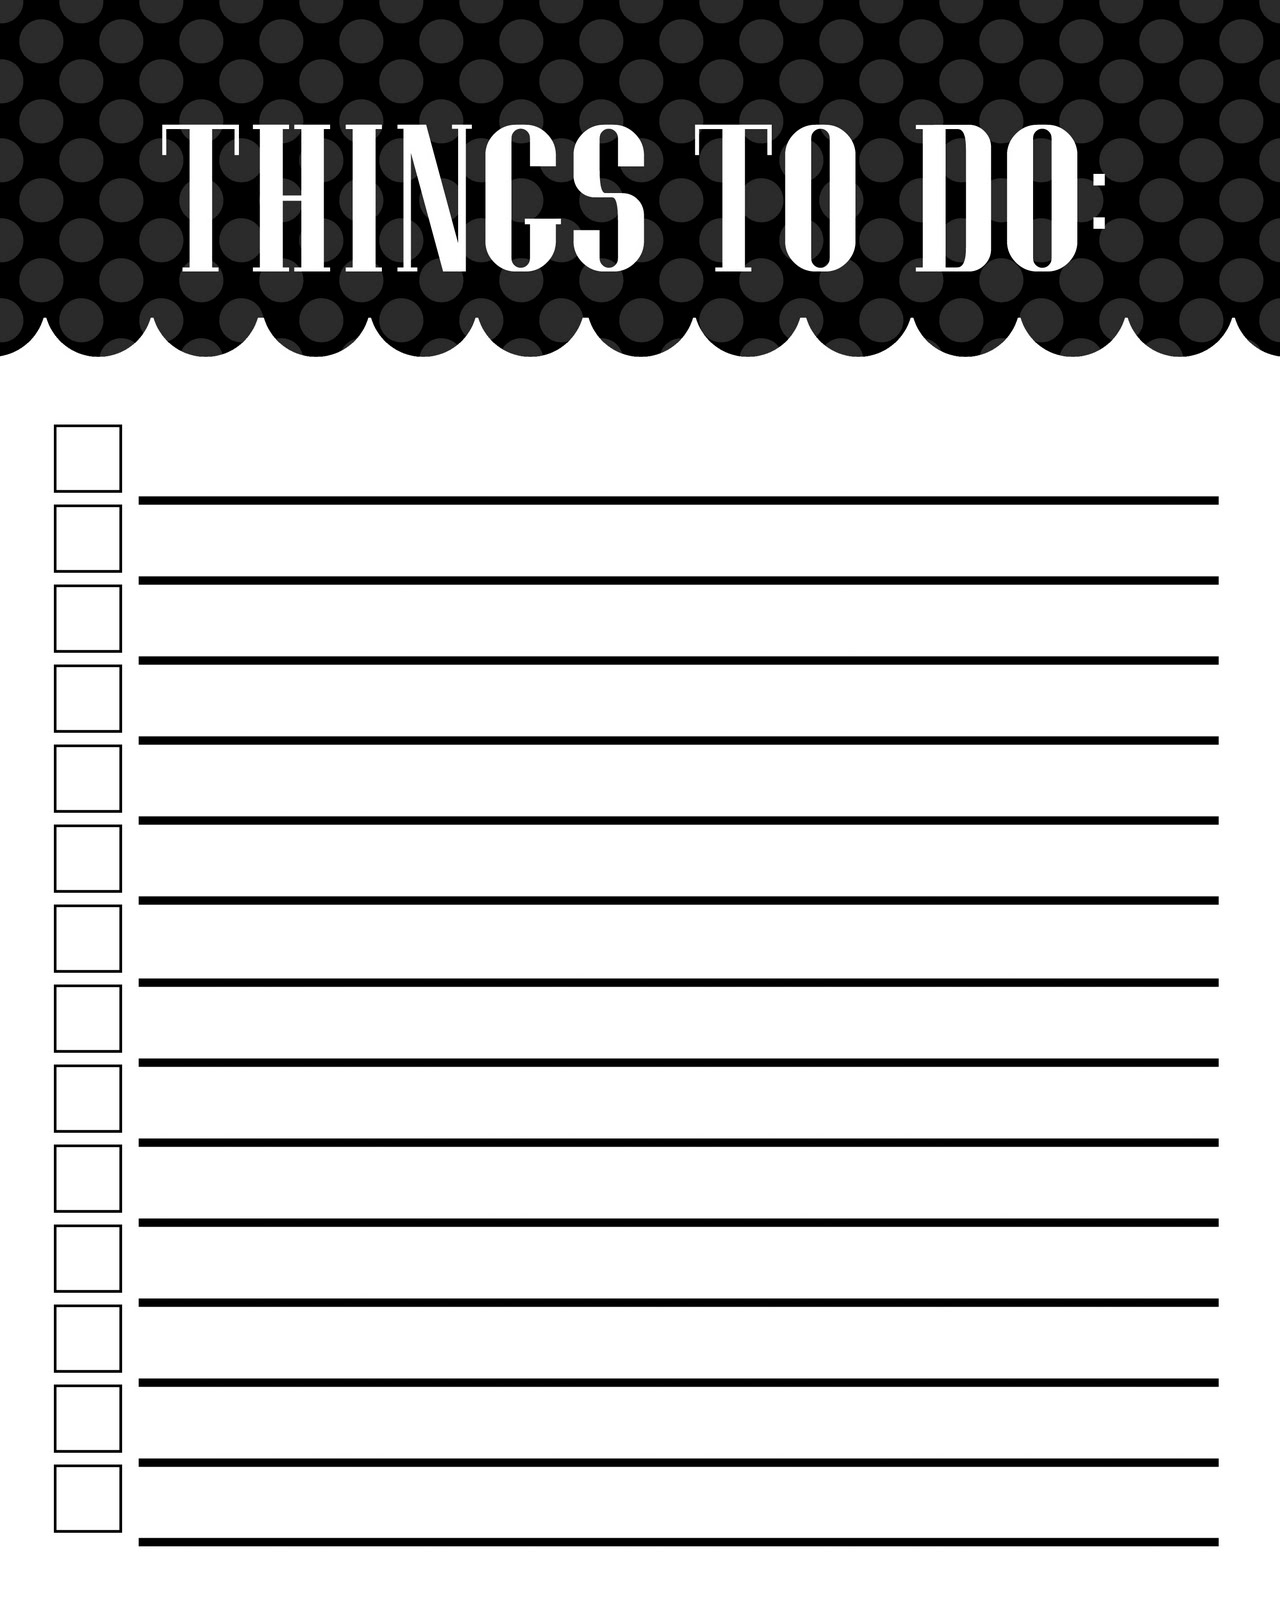 mckell u0026 39 s closet  to do list